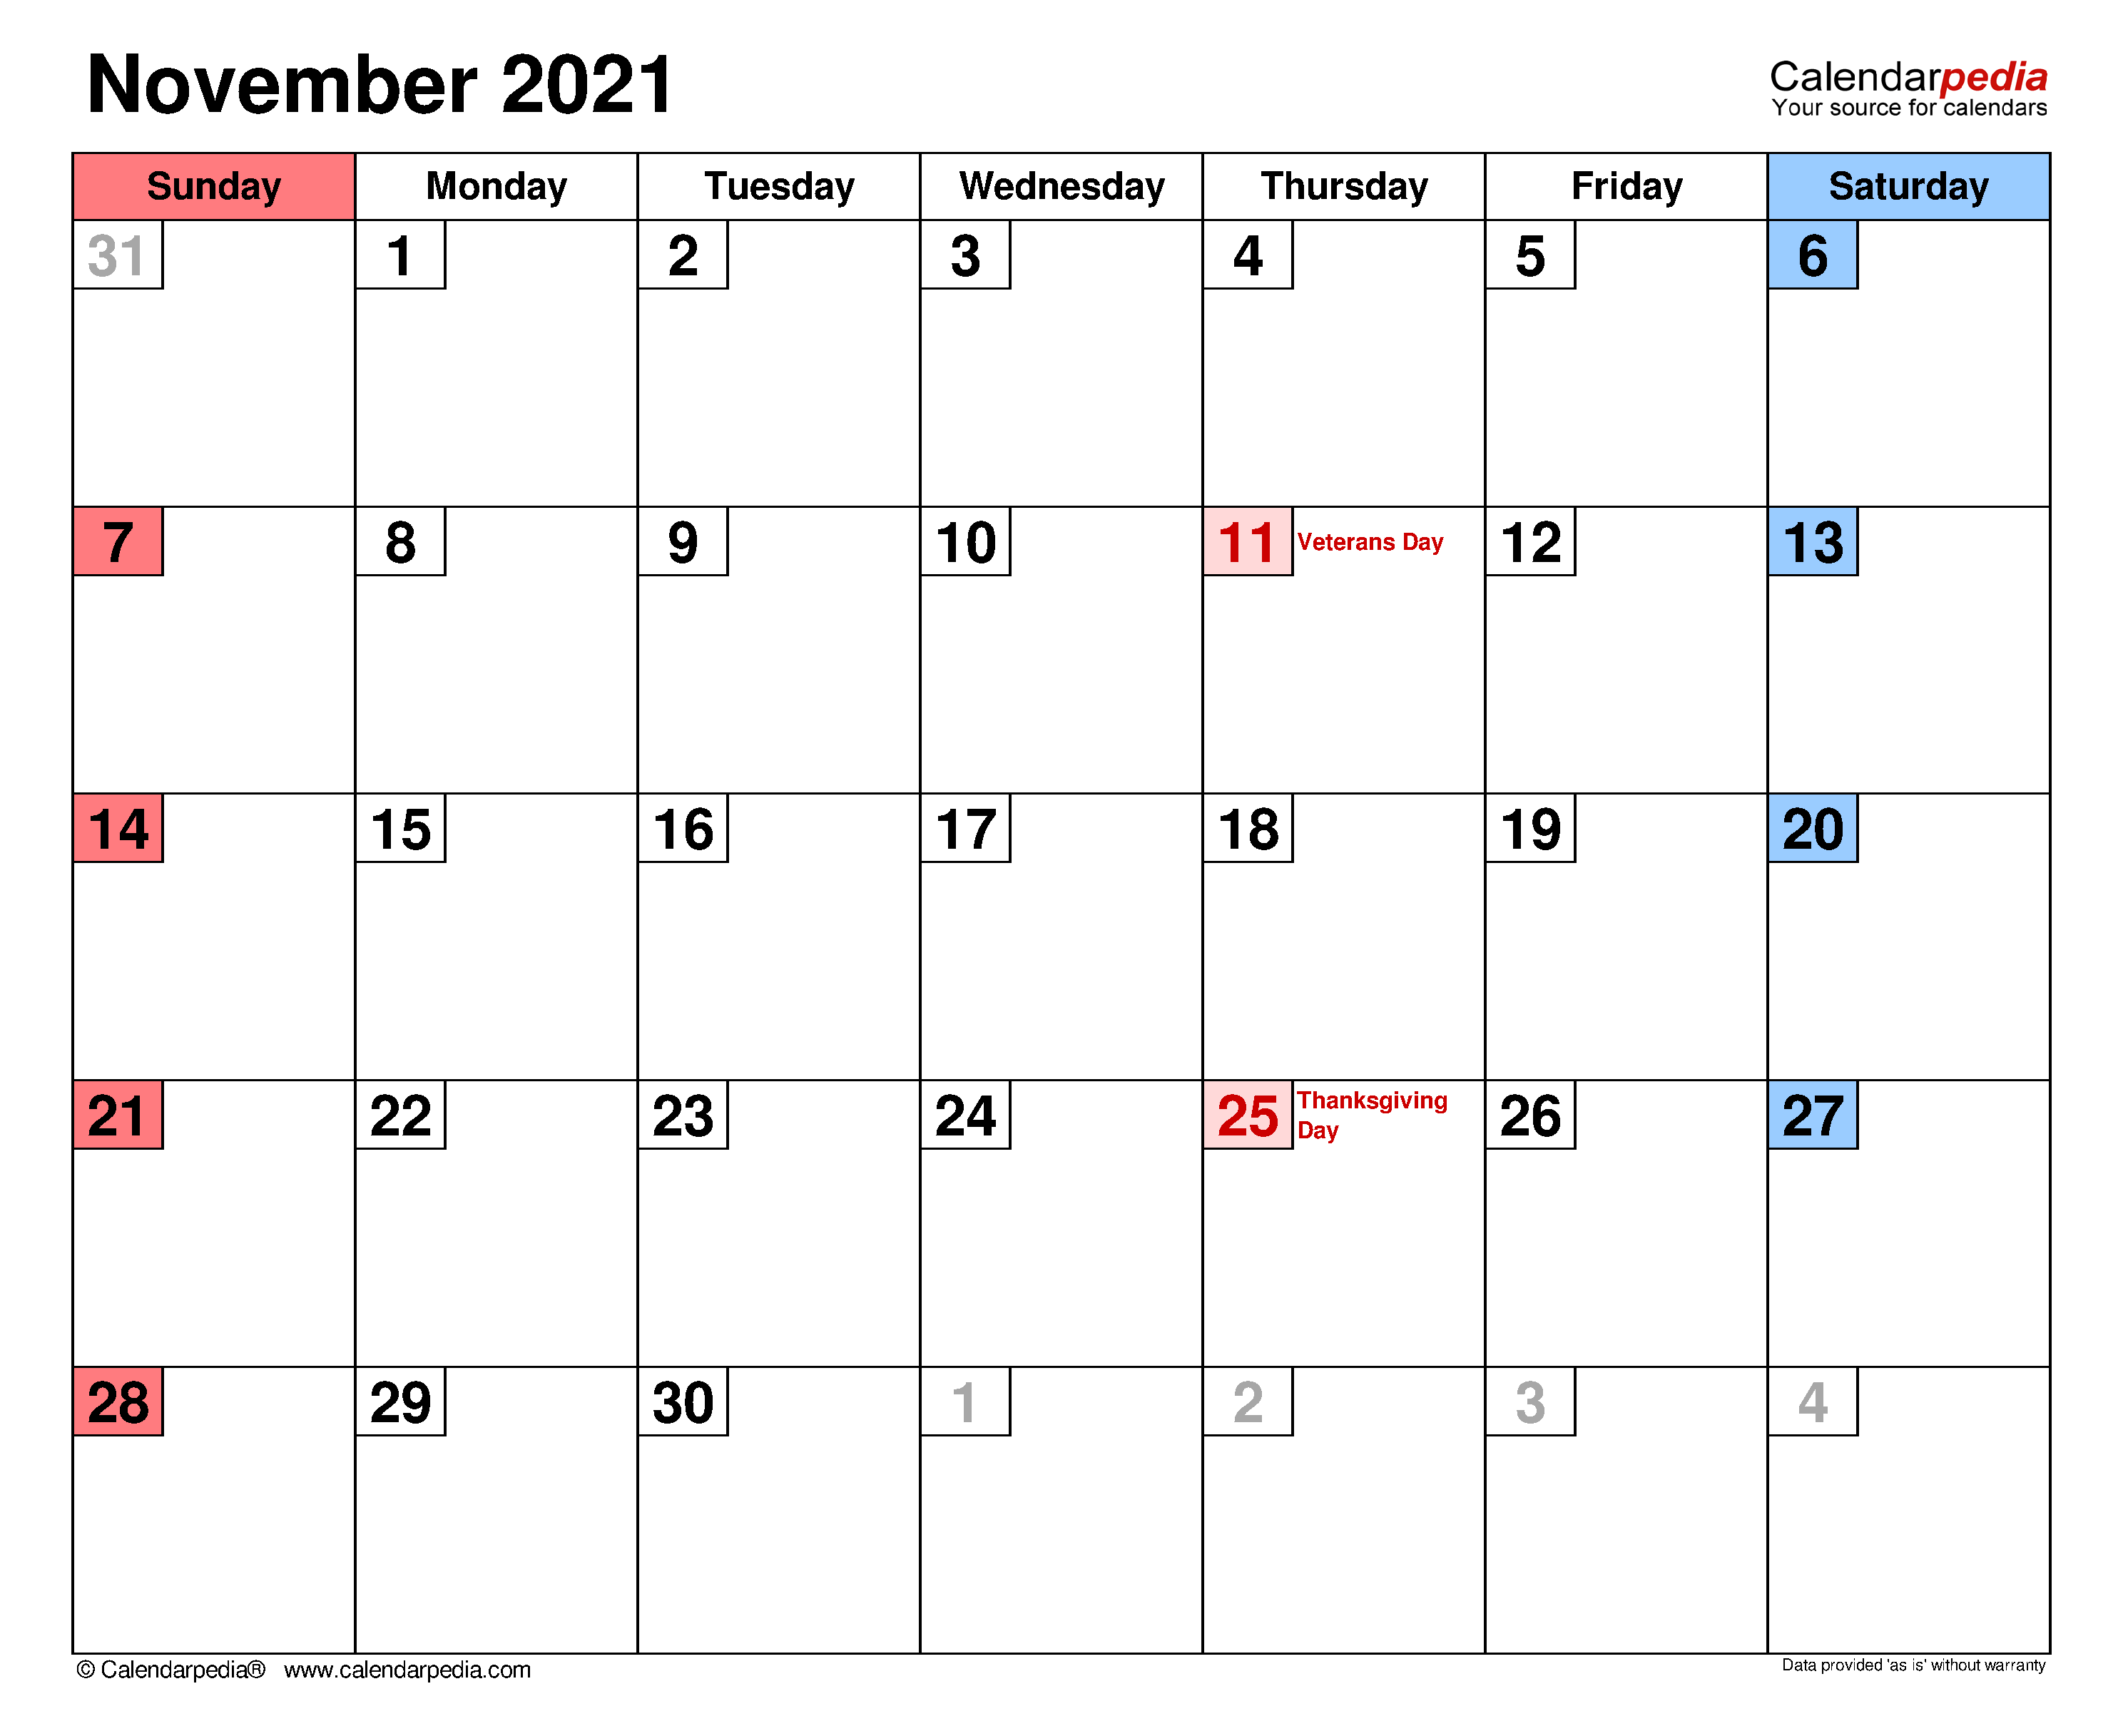 November 2021 - calendar templates for Word, Excel and PDF